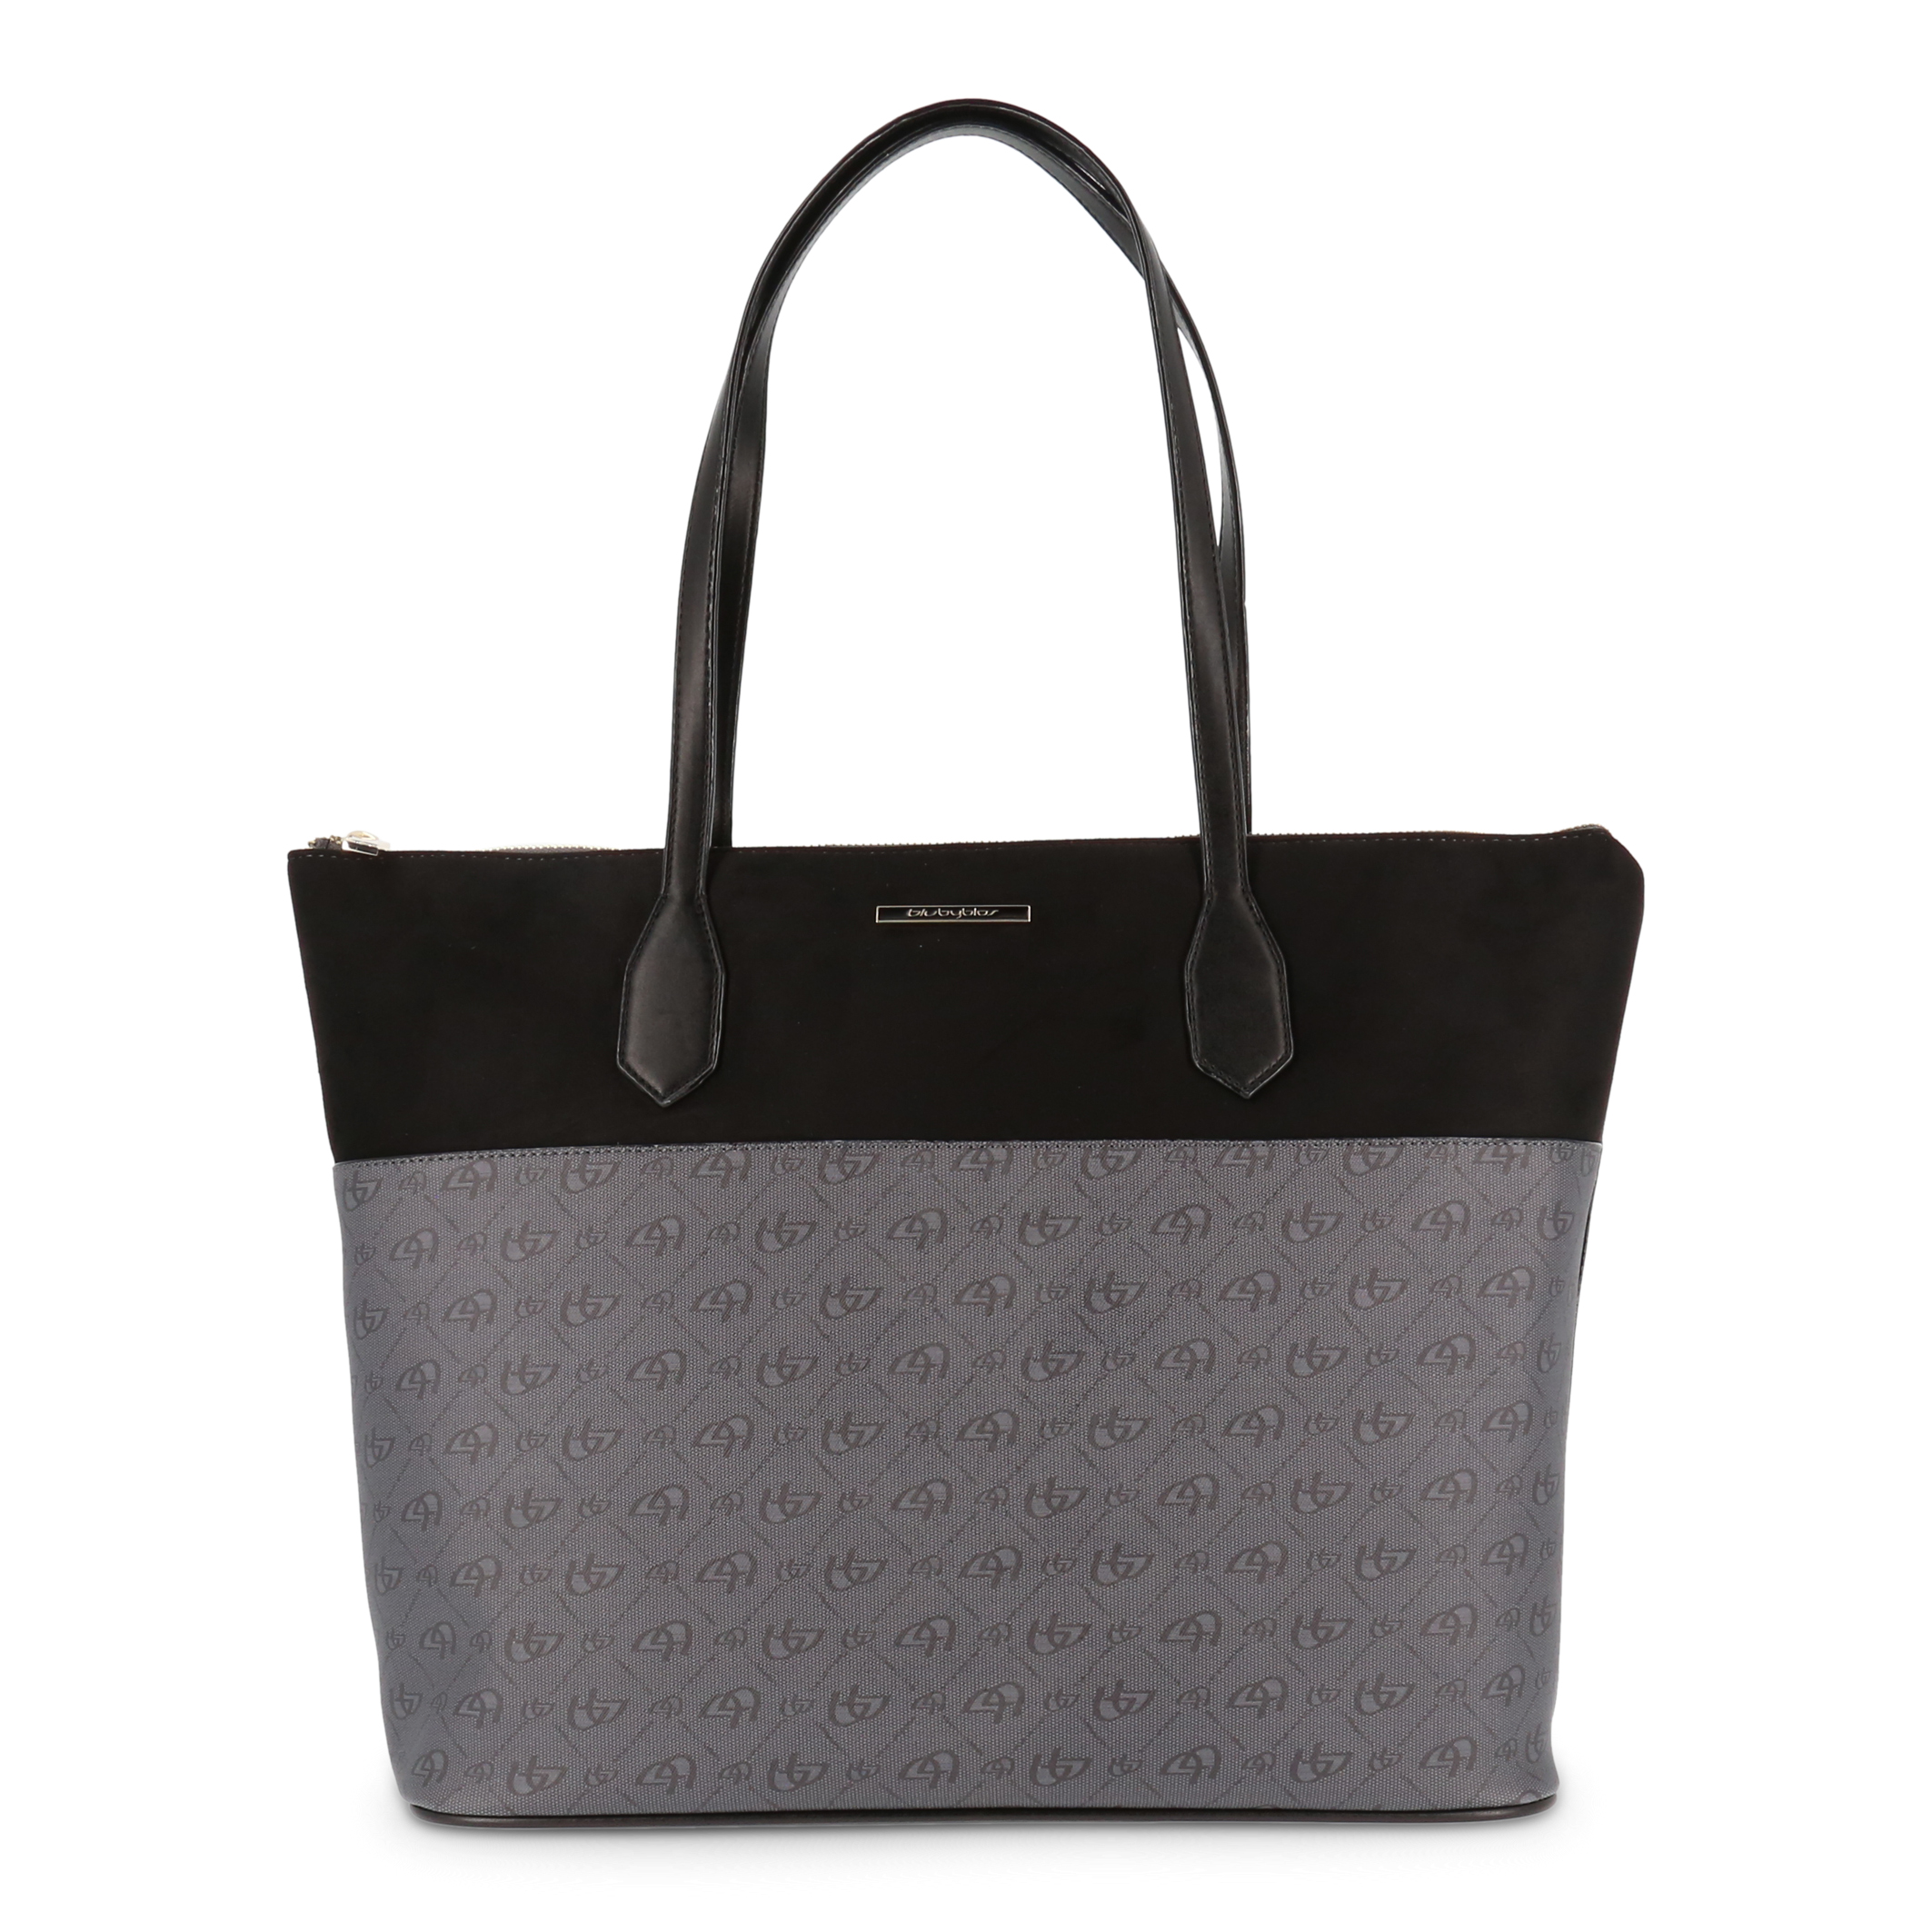 Shopping bag Blu Byblos HOLDME_685753 Donna Nero 95108